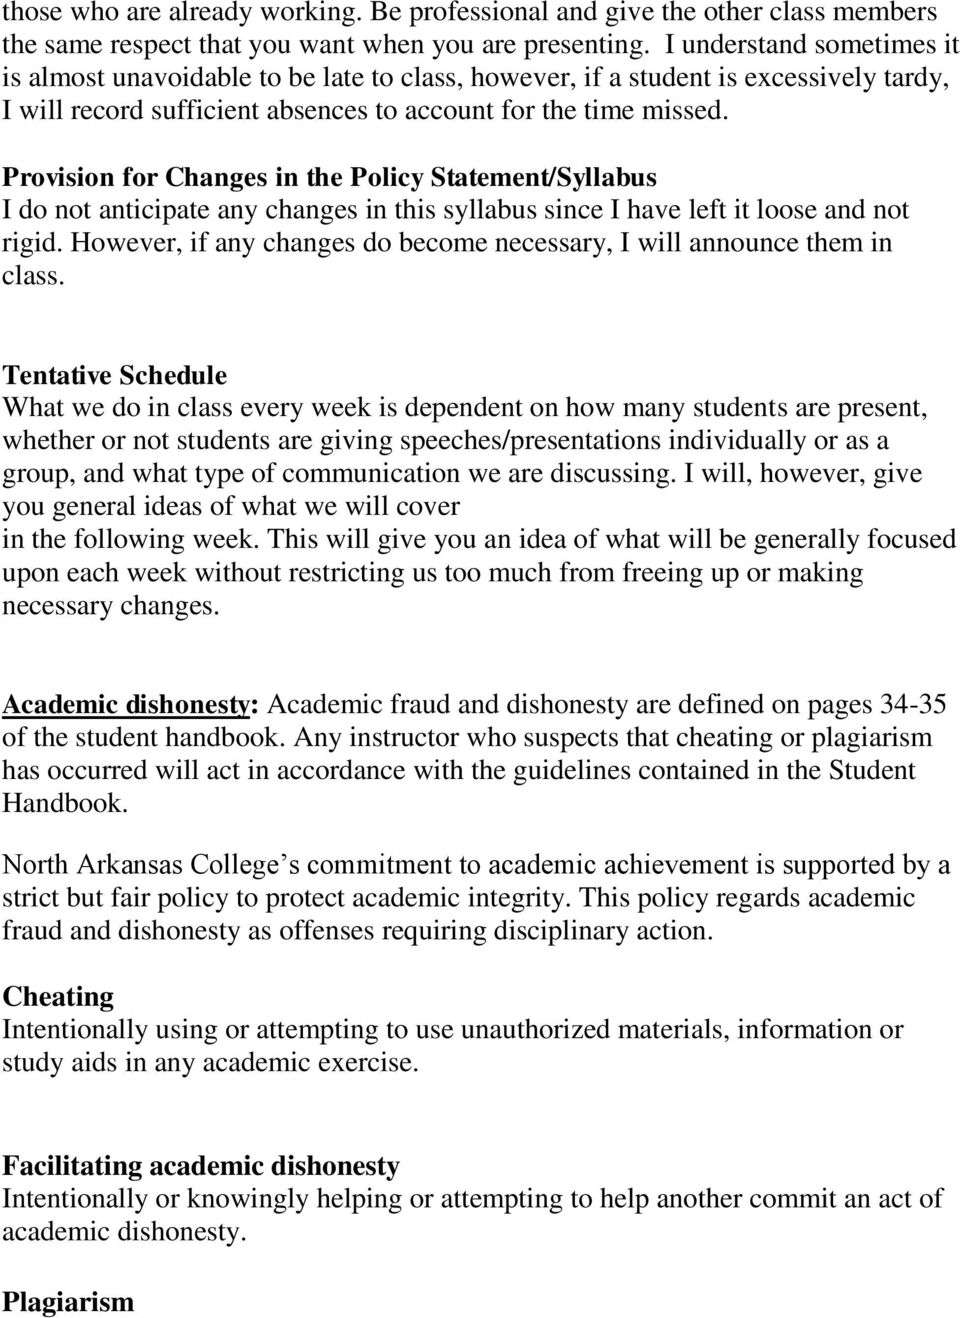 Provision for Changes in the Policy Statement/Syllabus I do not anticipate any changes in this syllabus since I have left it loose and not rigid.